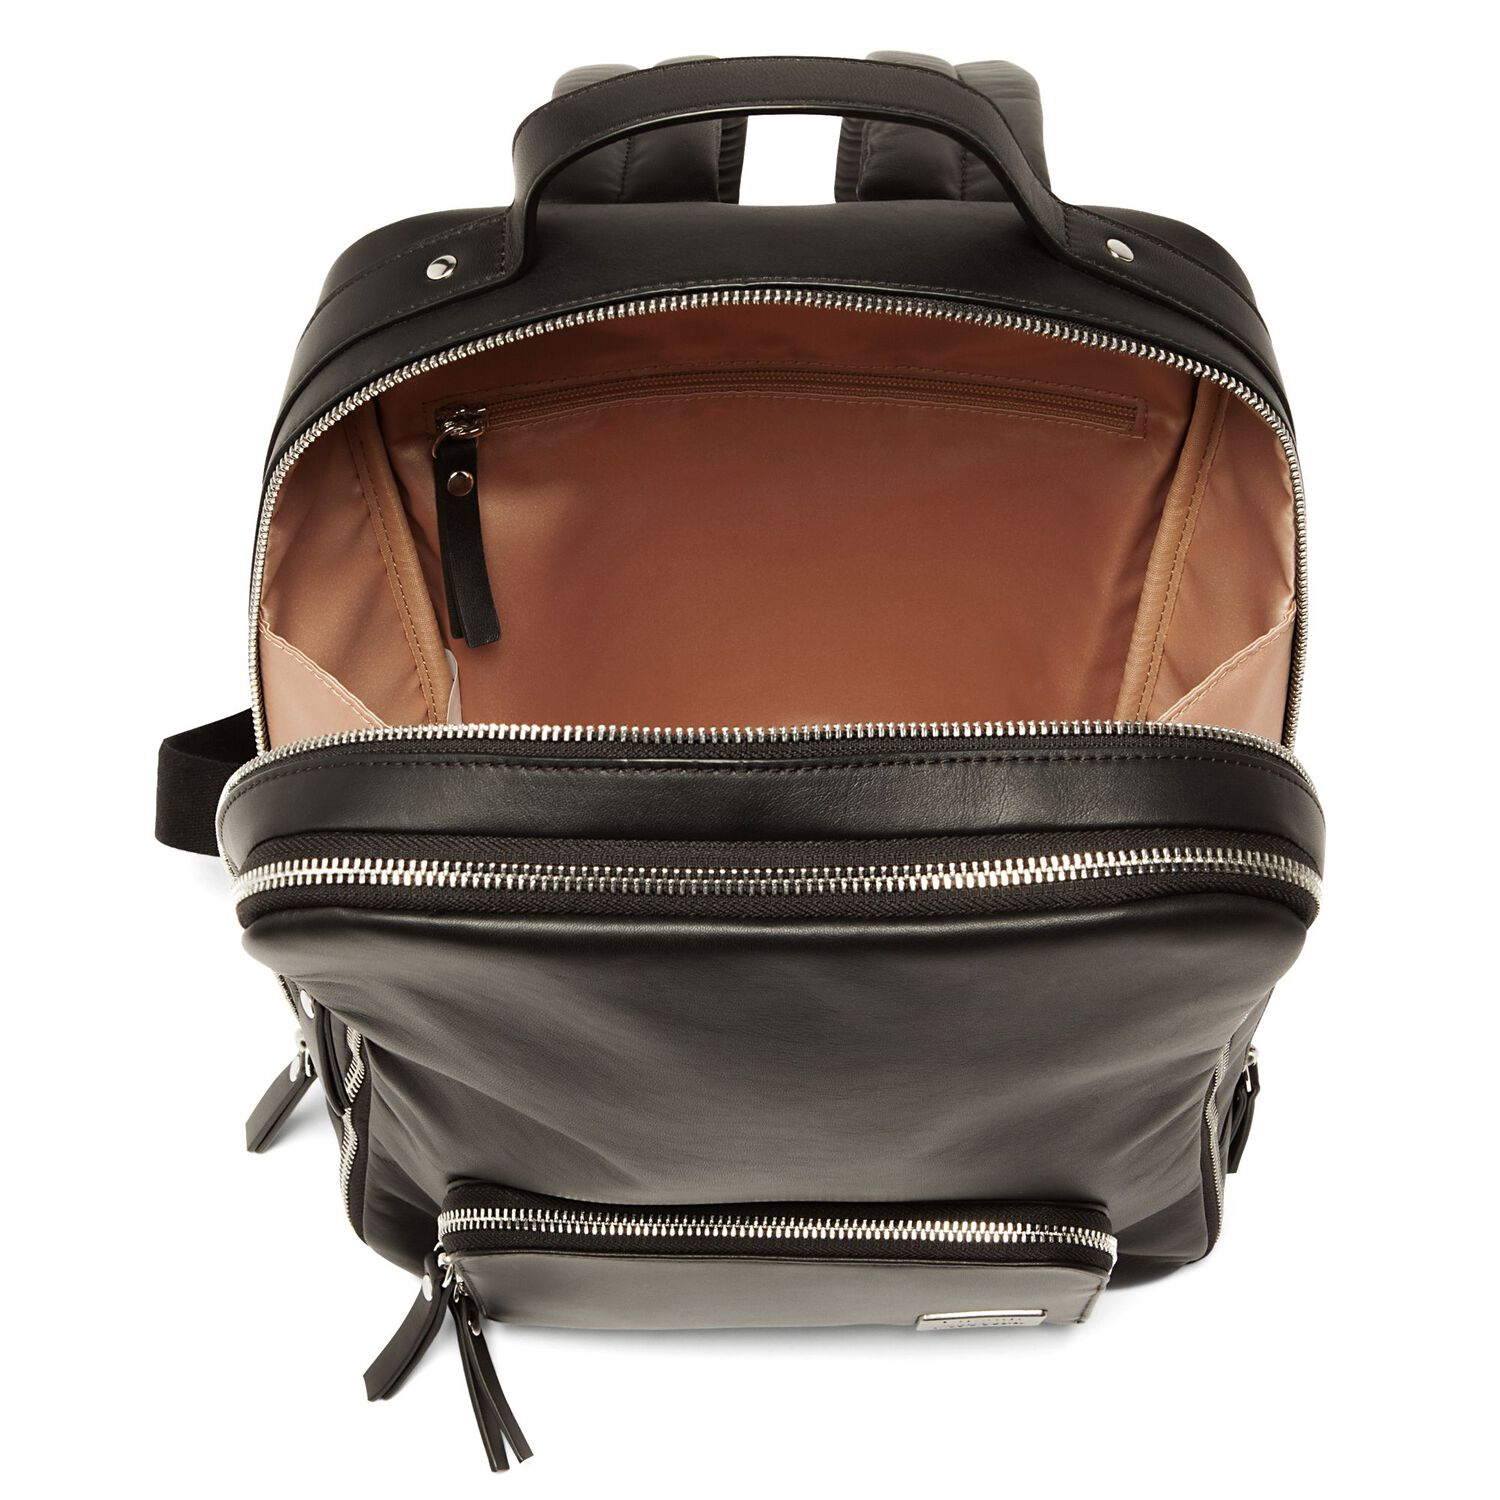 285ce6ab51e4 Lipault Jean Paul Gaultier Mix Backpack M in the color Black.